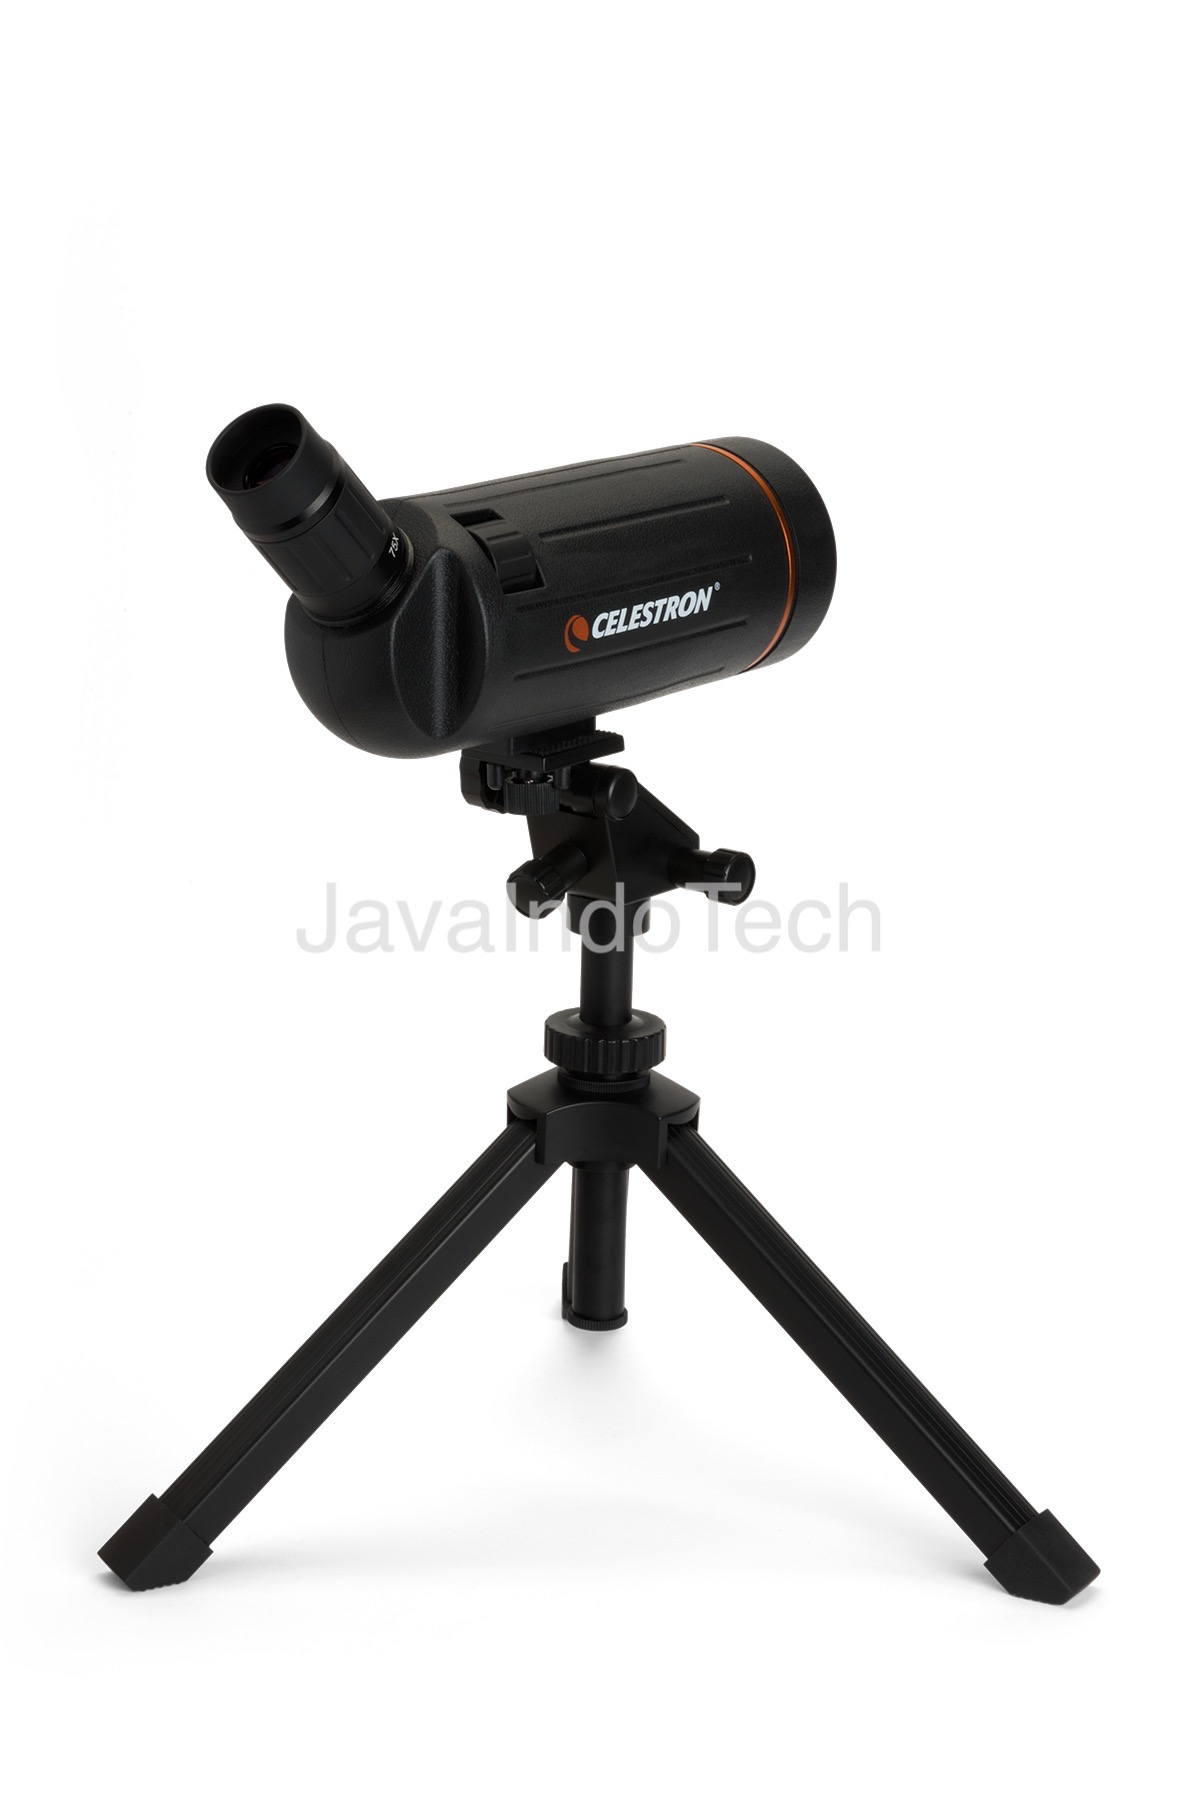 Harga Jual Spotting Scope Celestron C70 Mini Mak